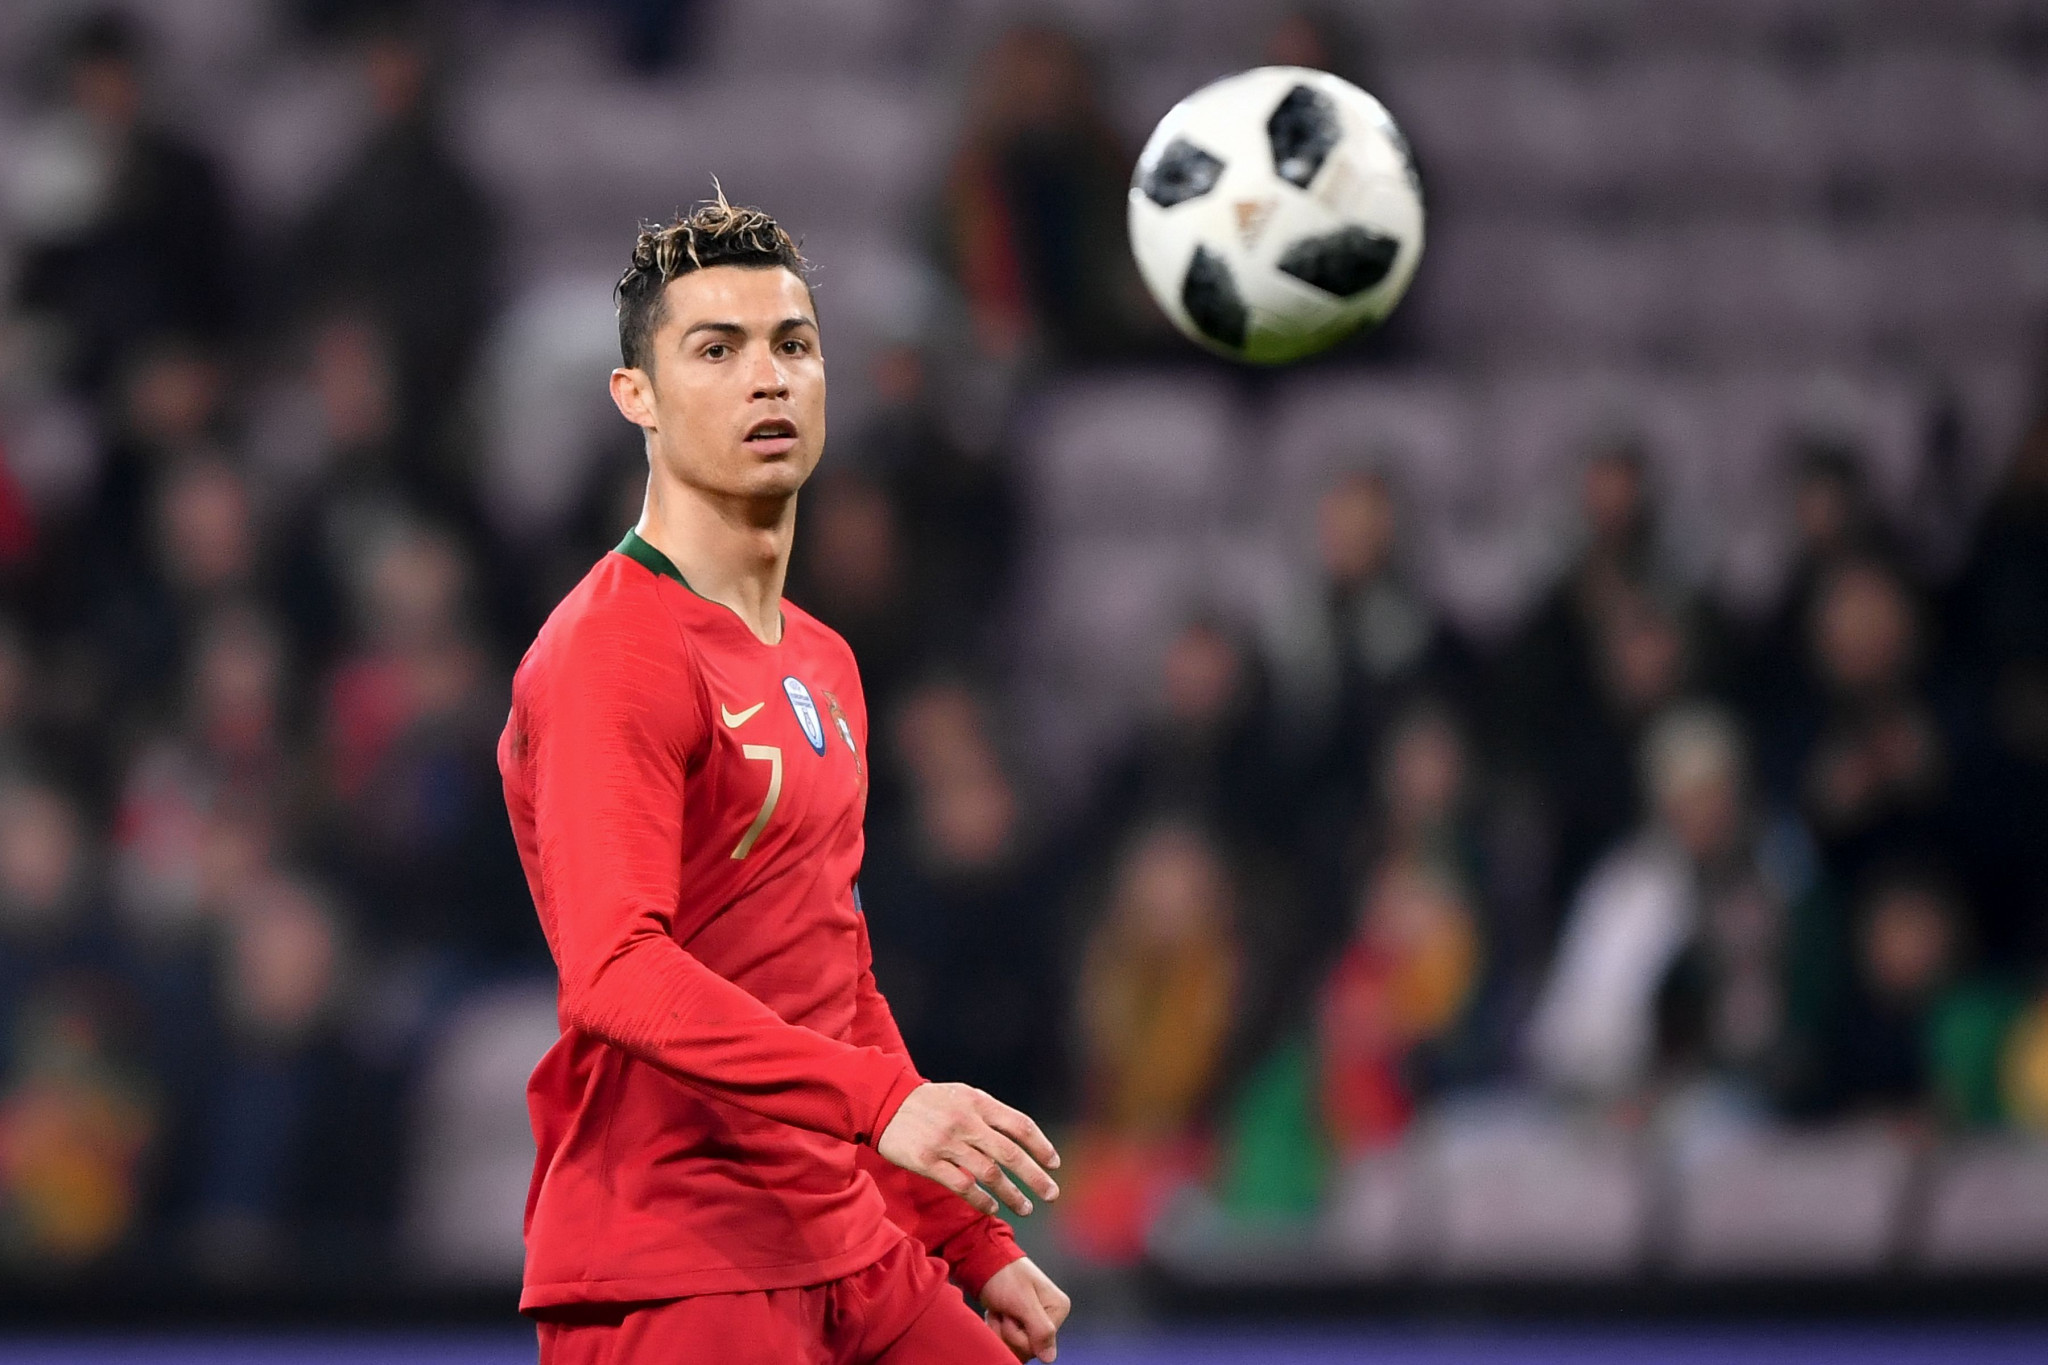 Cristiano Ronaldo will be hoping to receive a second consecutive Best FIFA Men's Player title in London ©Getty Images